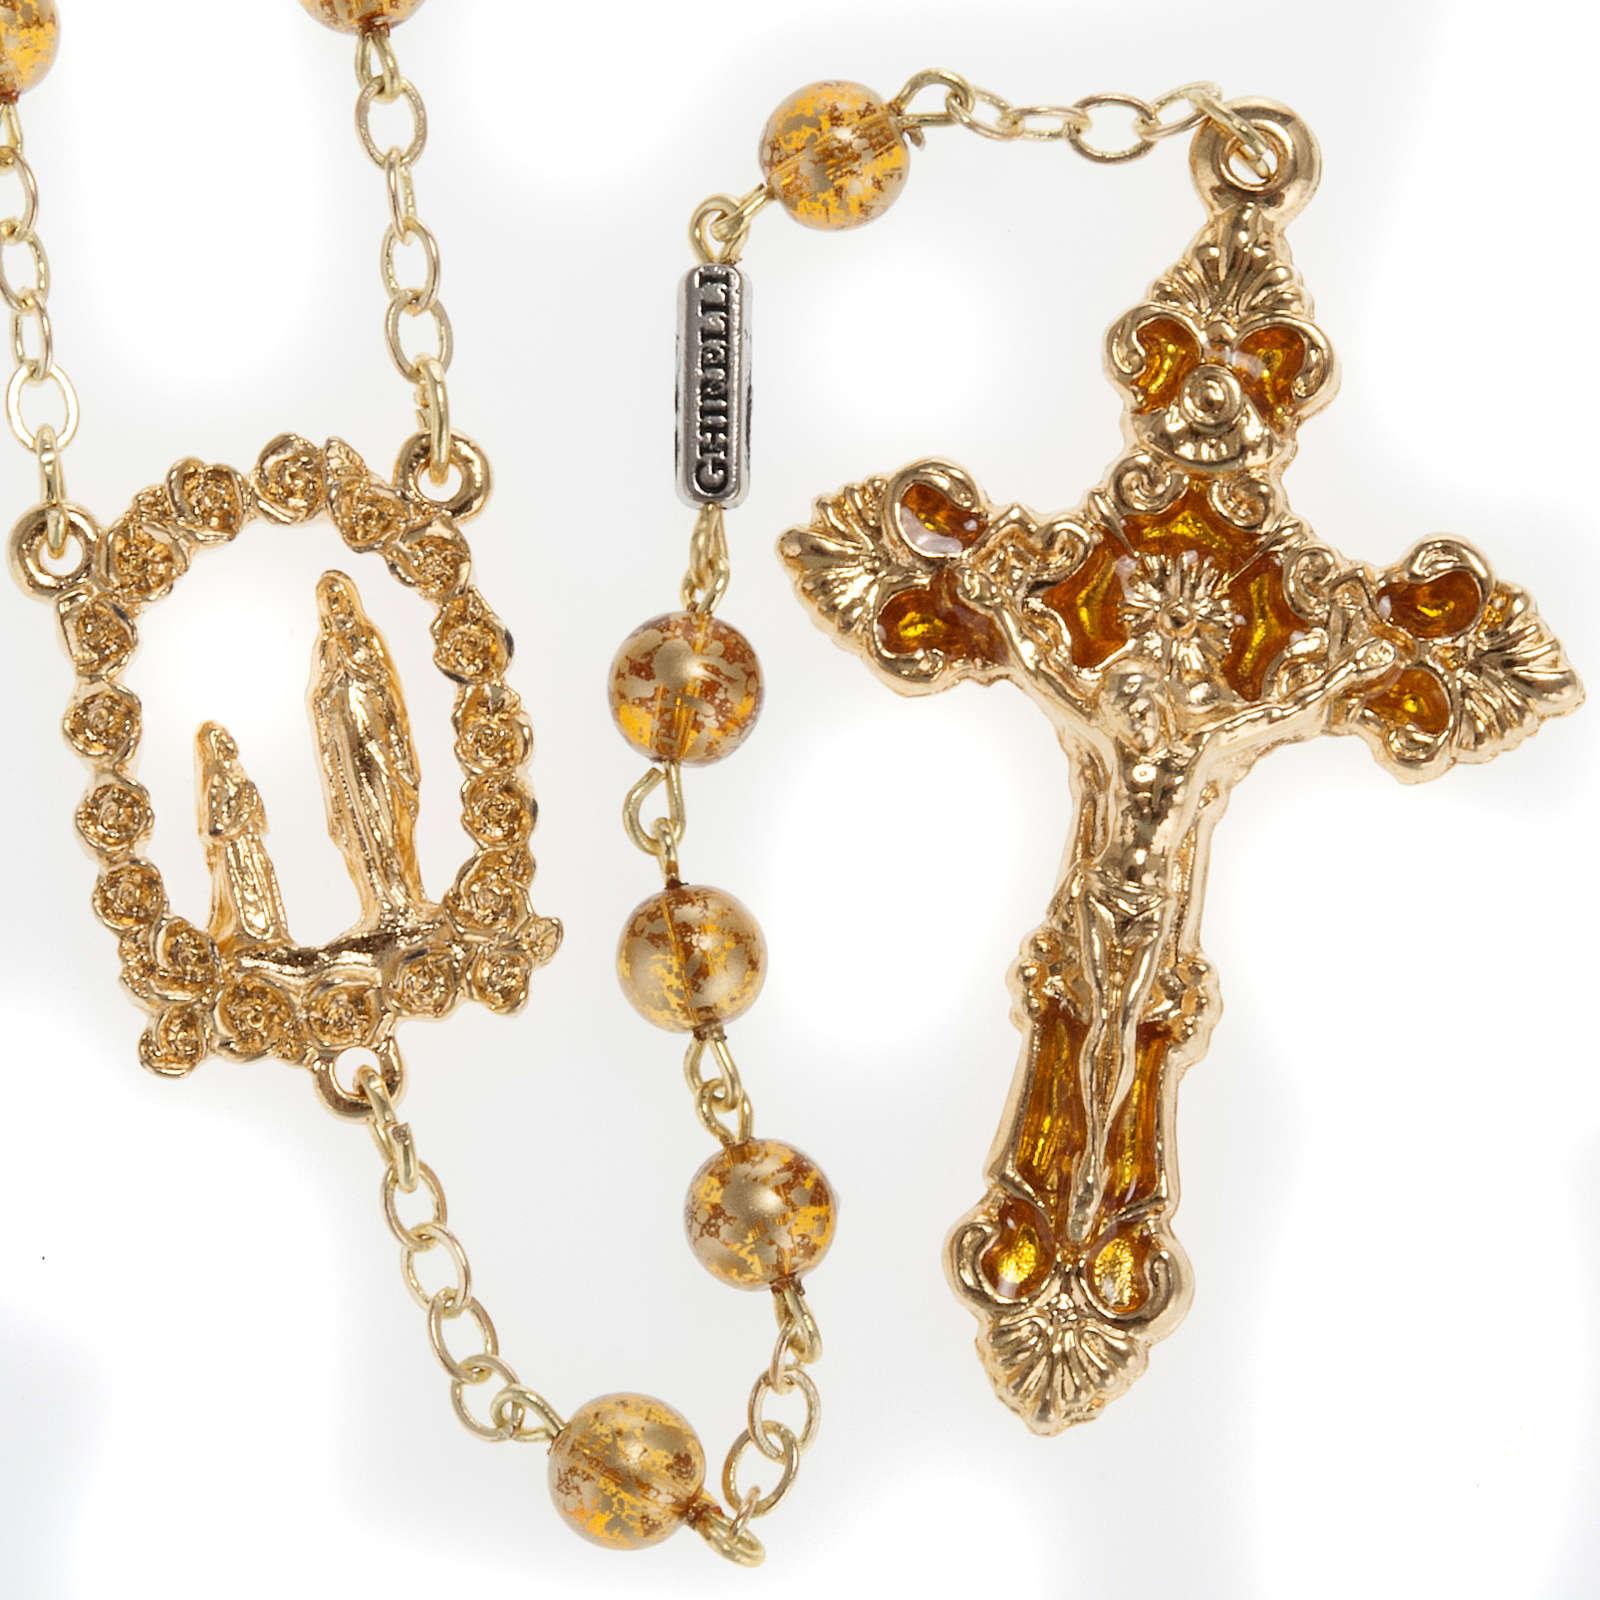 Ghirelli yellow rosary Grotto of Lourdes 6 mm, golden-plated 4